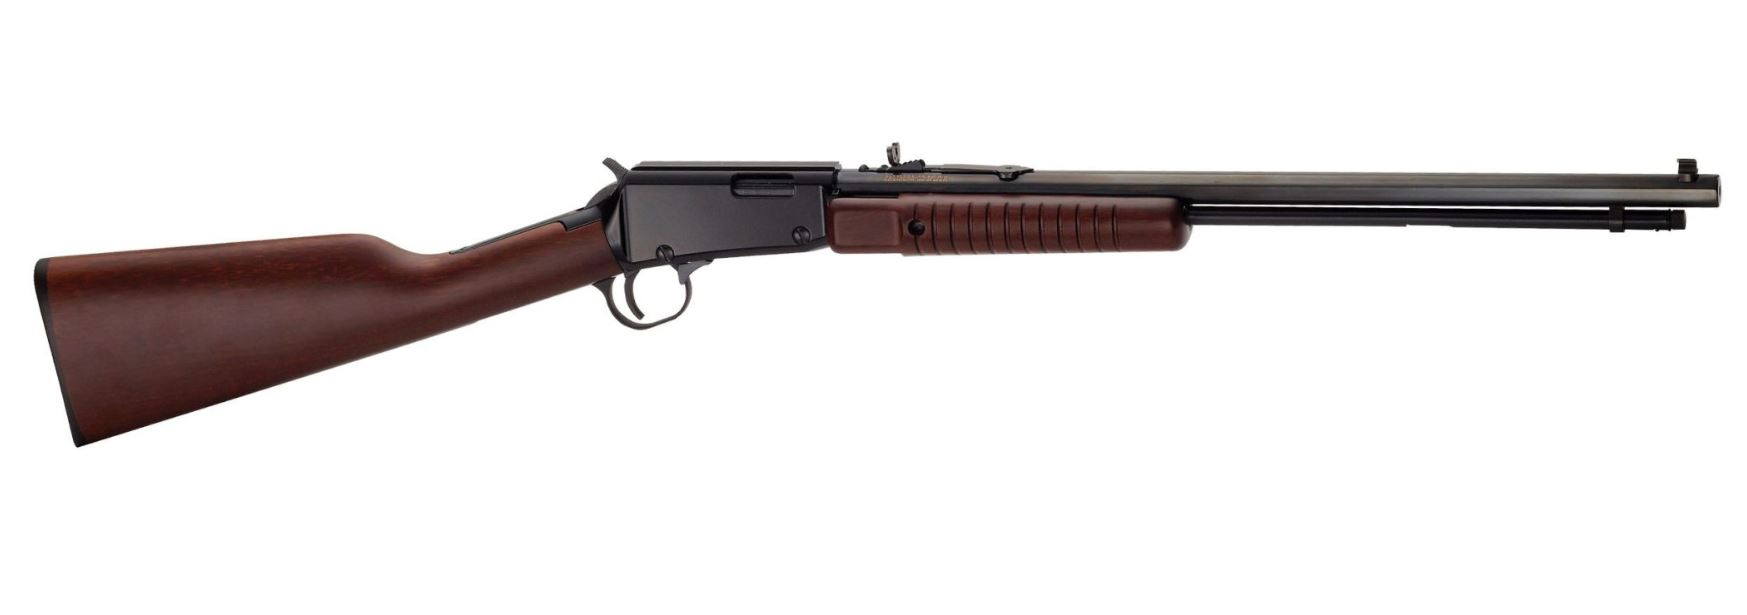 Henry Repeating Arms Pump Rifle 22 LR